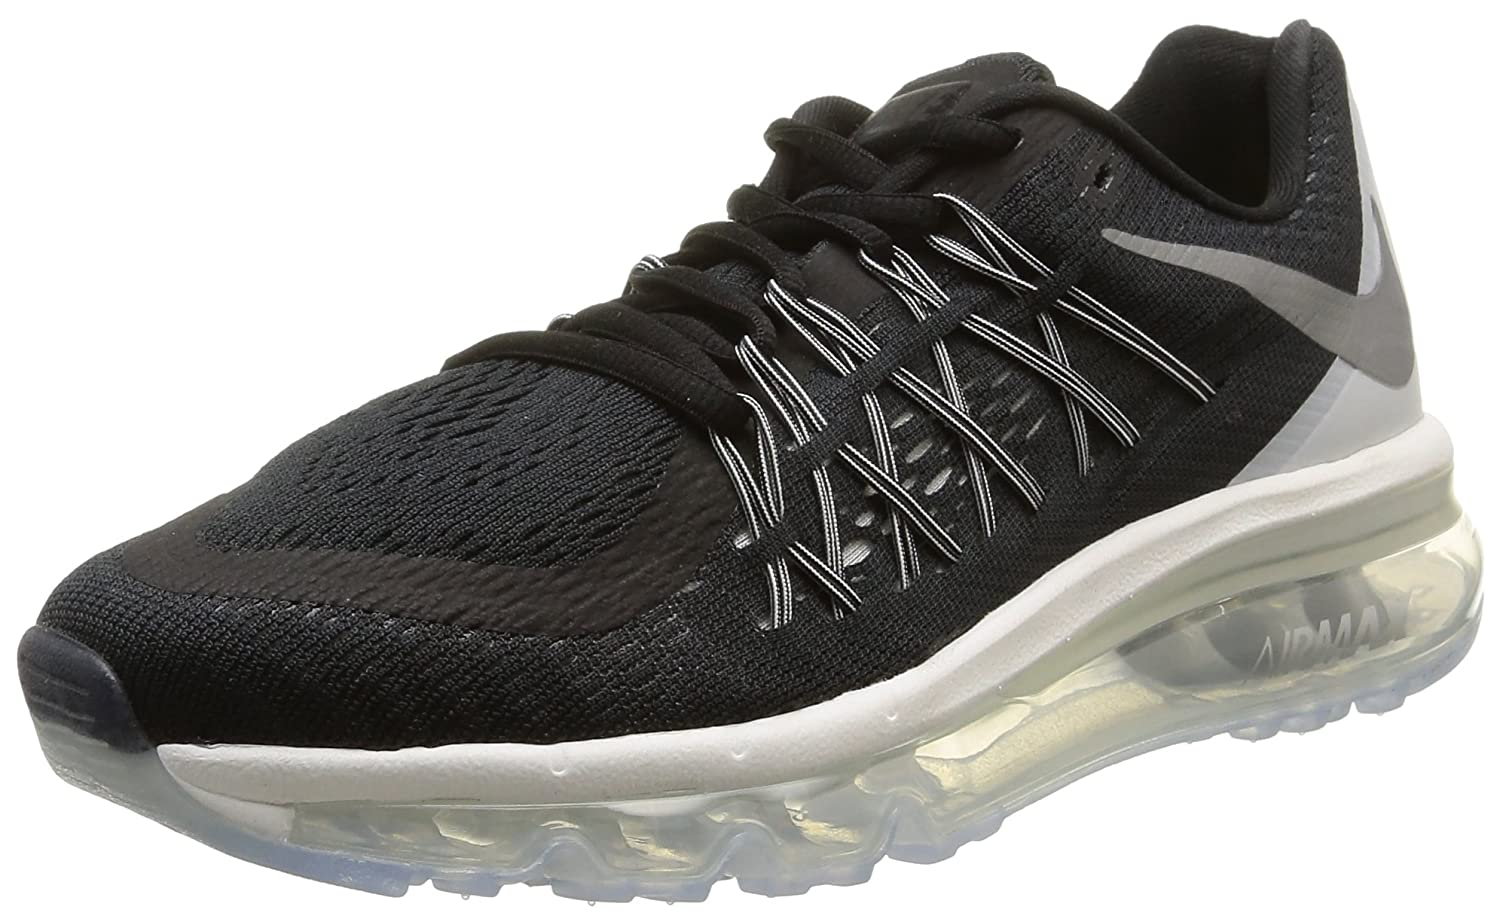 best website 82b52 2f92b Amazon.com   Nike Womens Air Max 2015 Low Top Lace Up Running Sneaker    Running